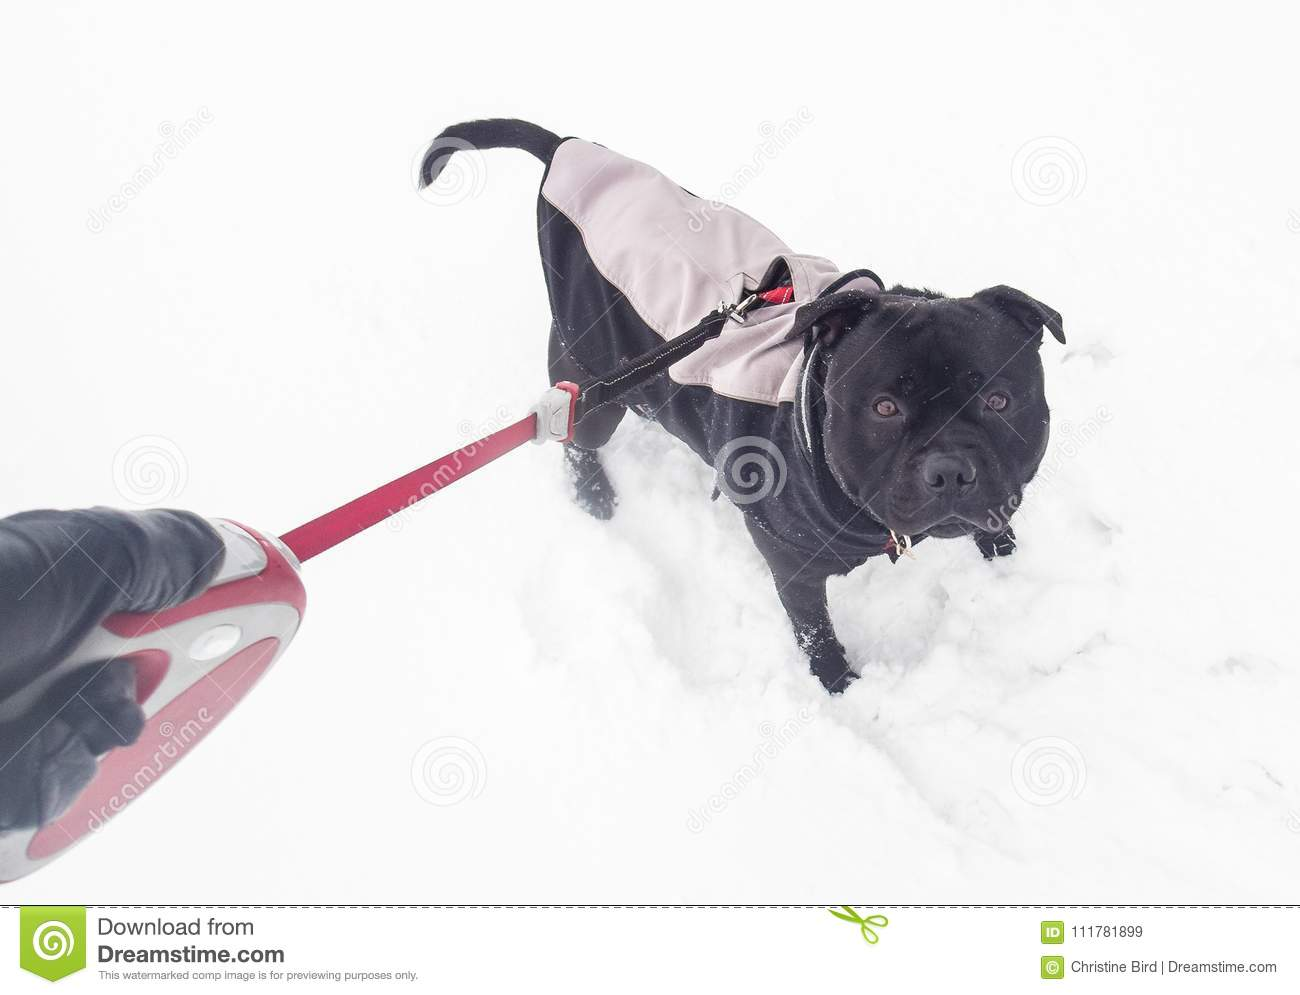 Staffordshire bull terrier dog wearing a coat in the snow